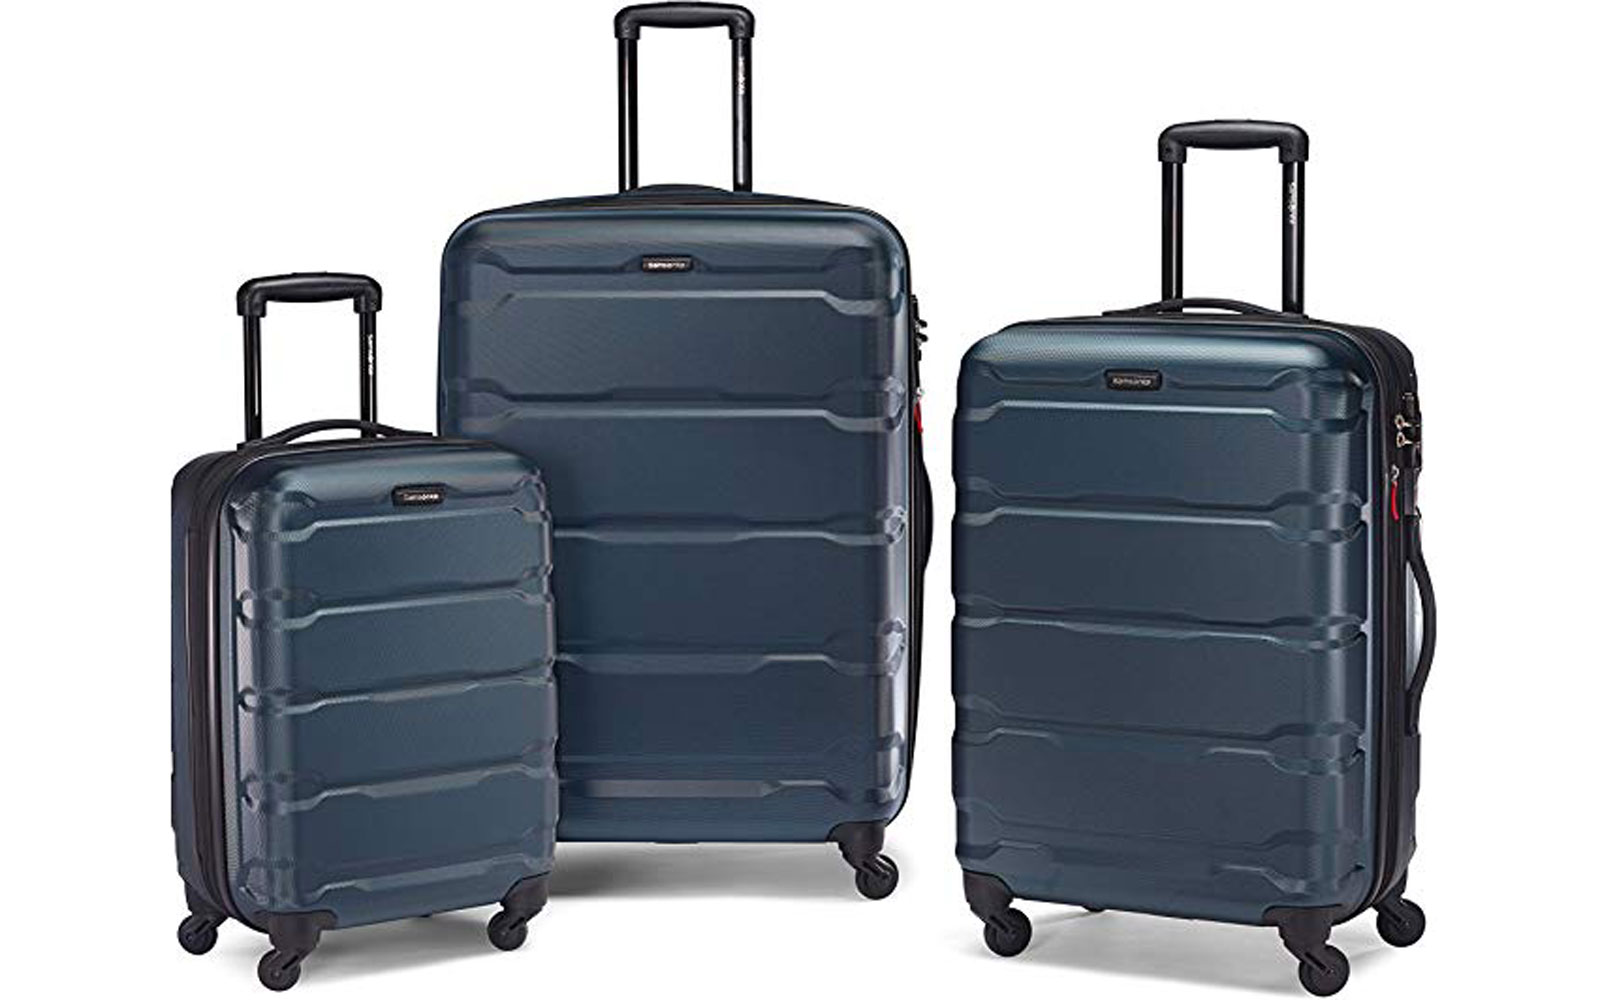 Set of Three Dark Grey/Blue Hardside Suitcases